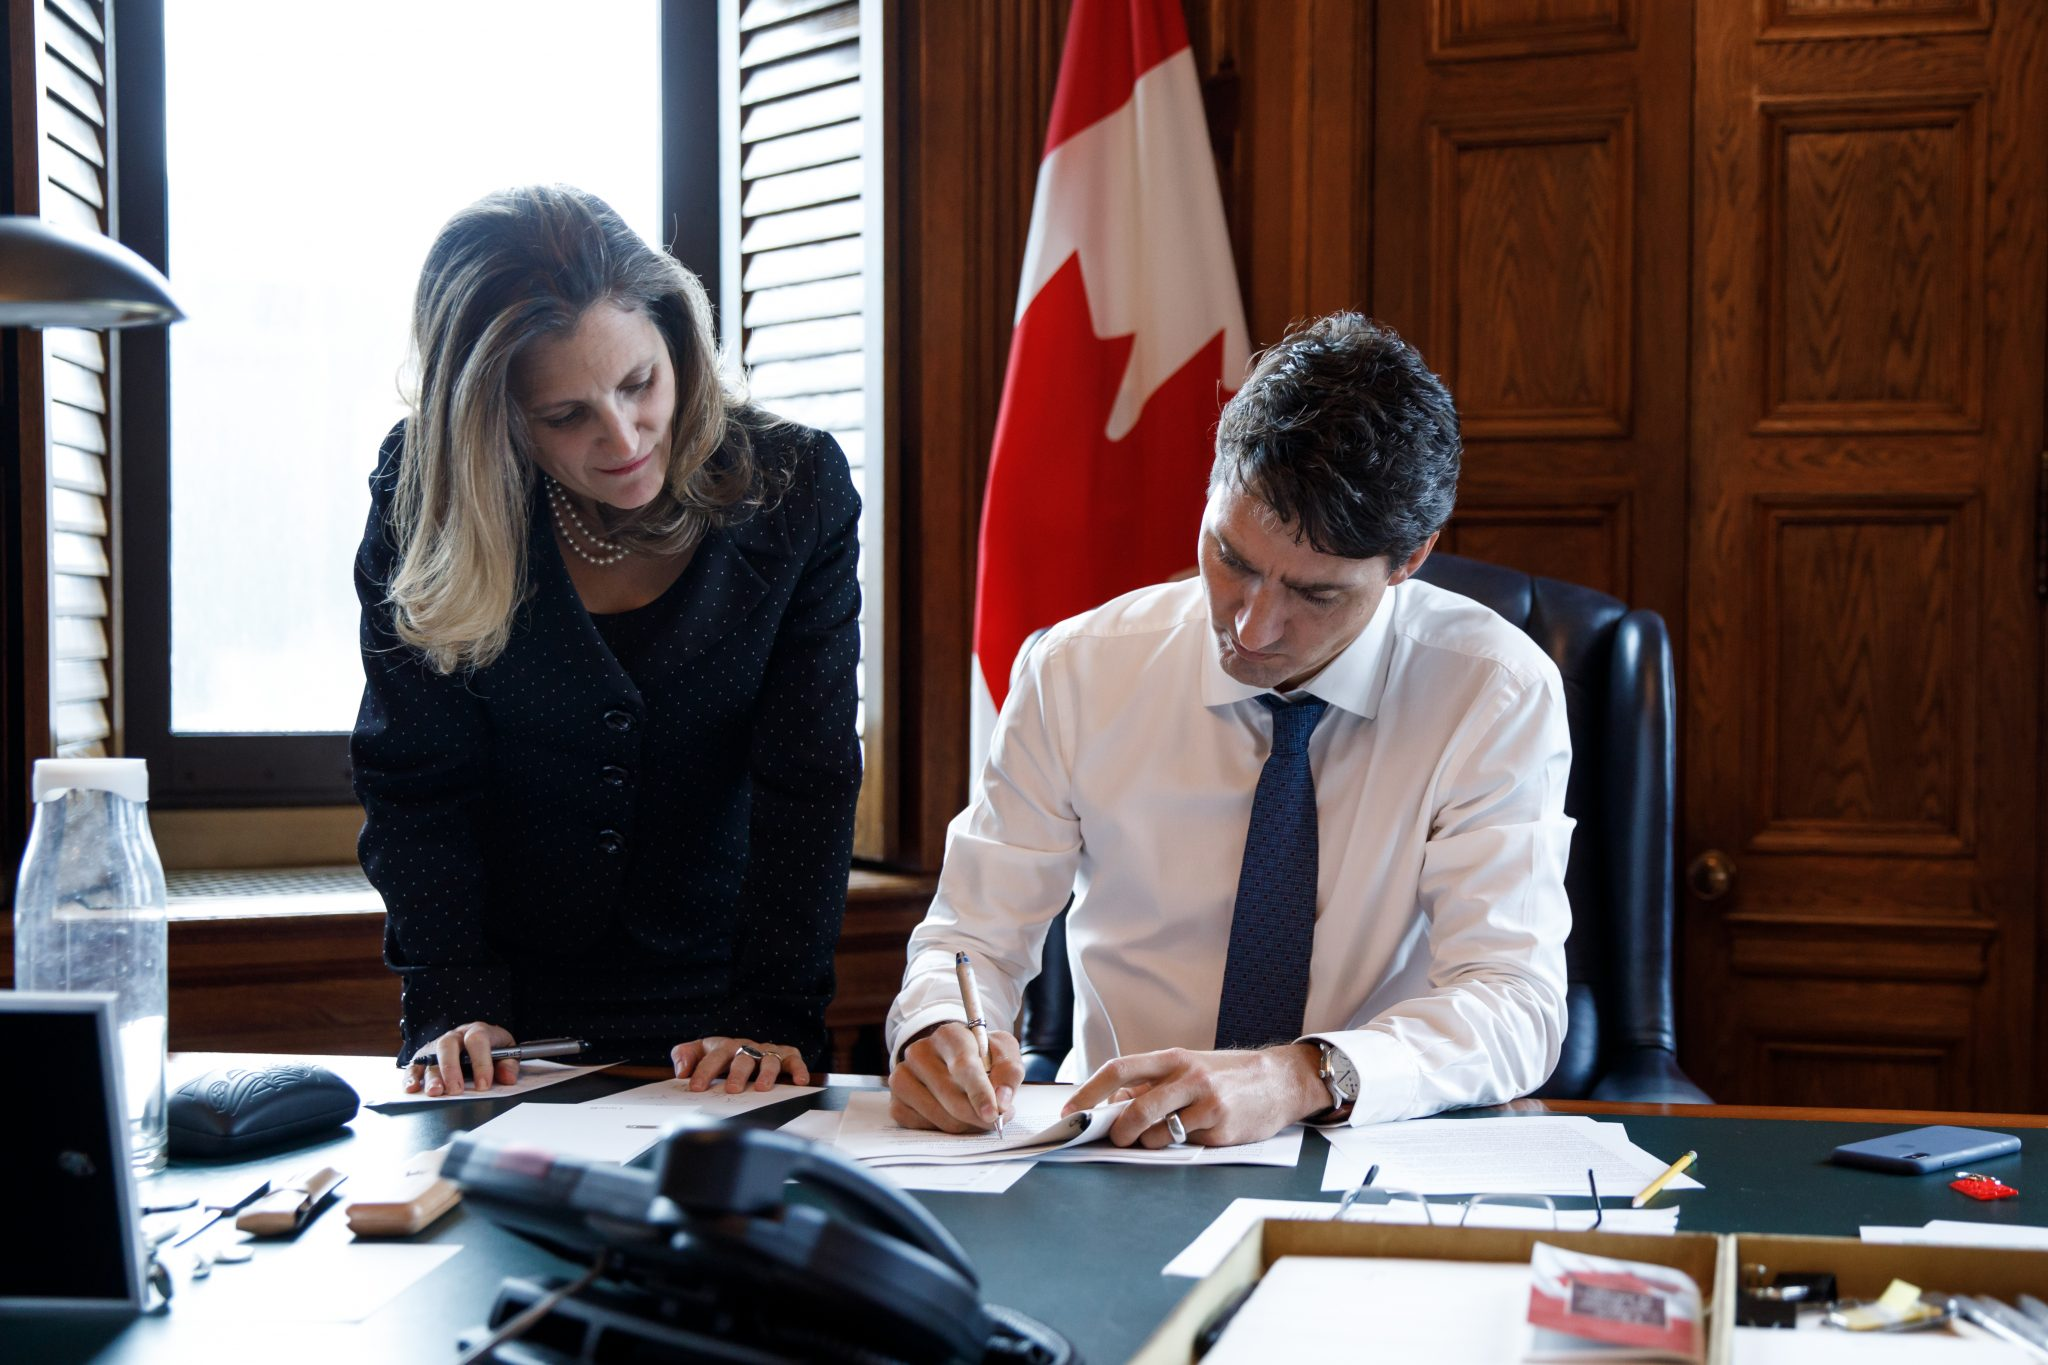 Op-Ed by the Honorable Chrystia Freeland, Minister of Foreign Affairs